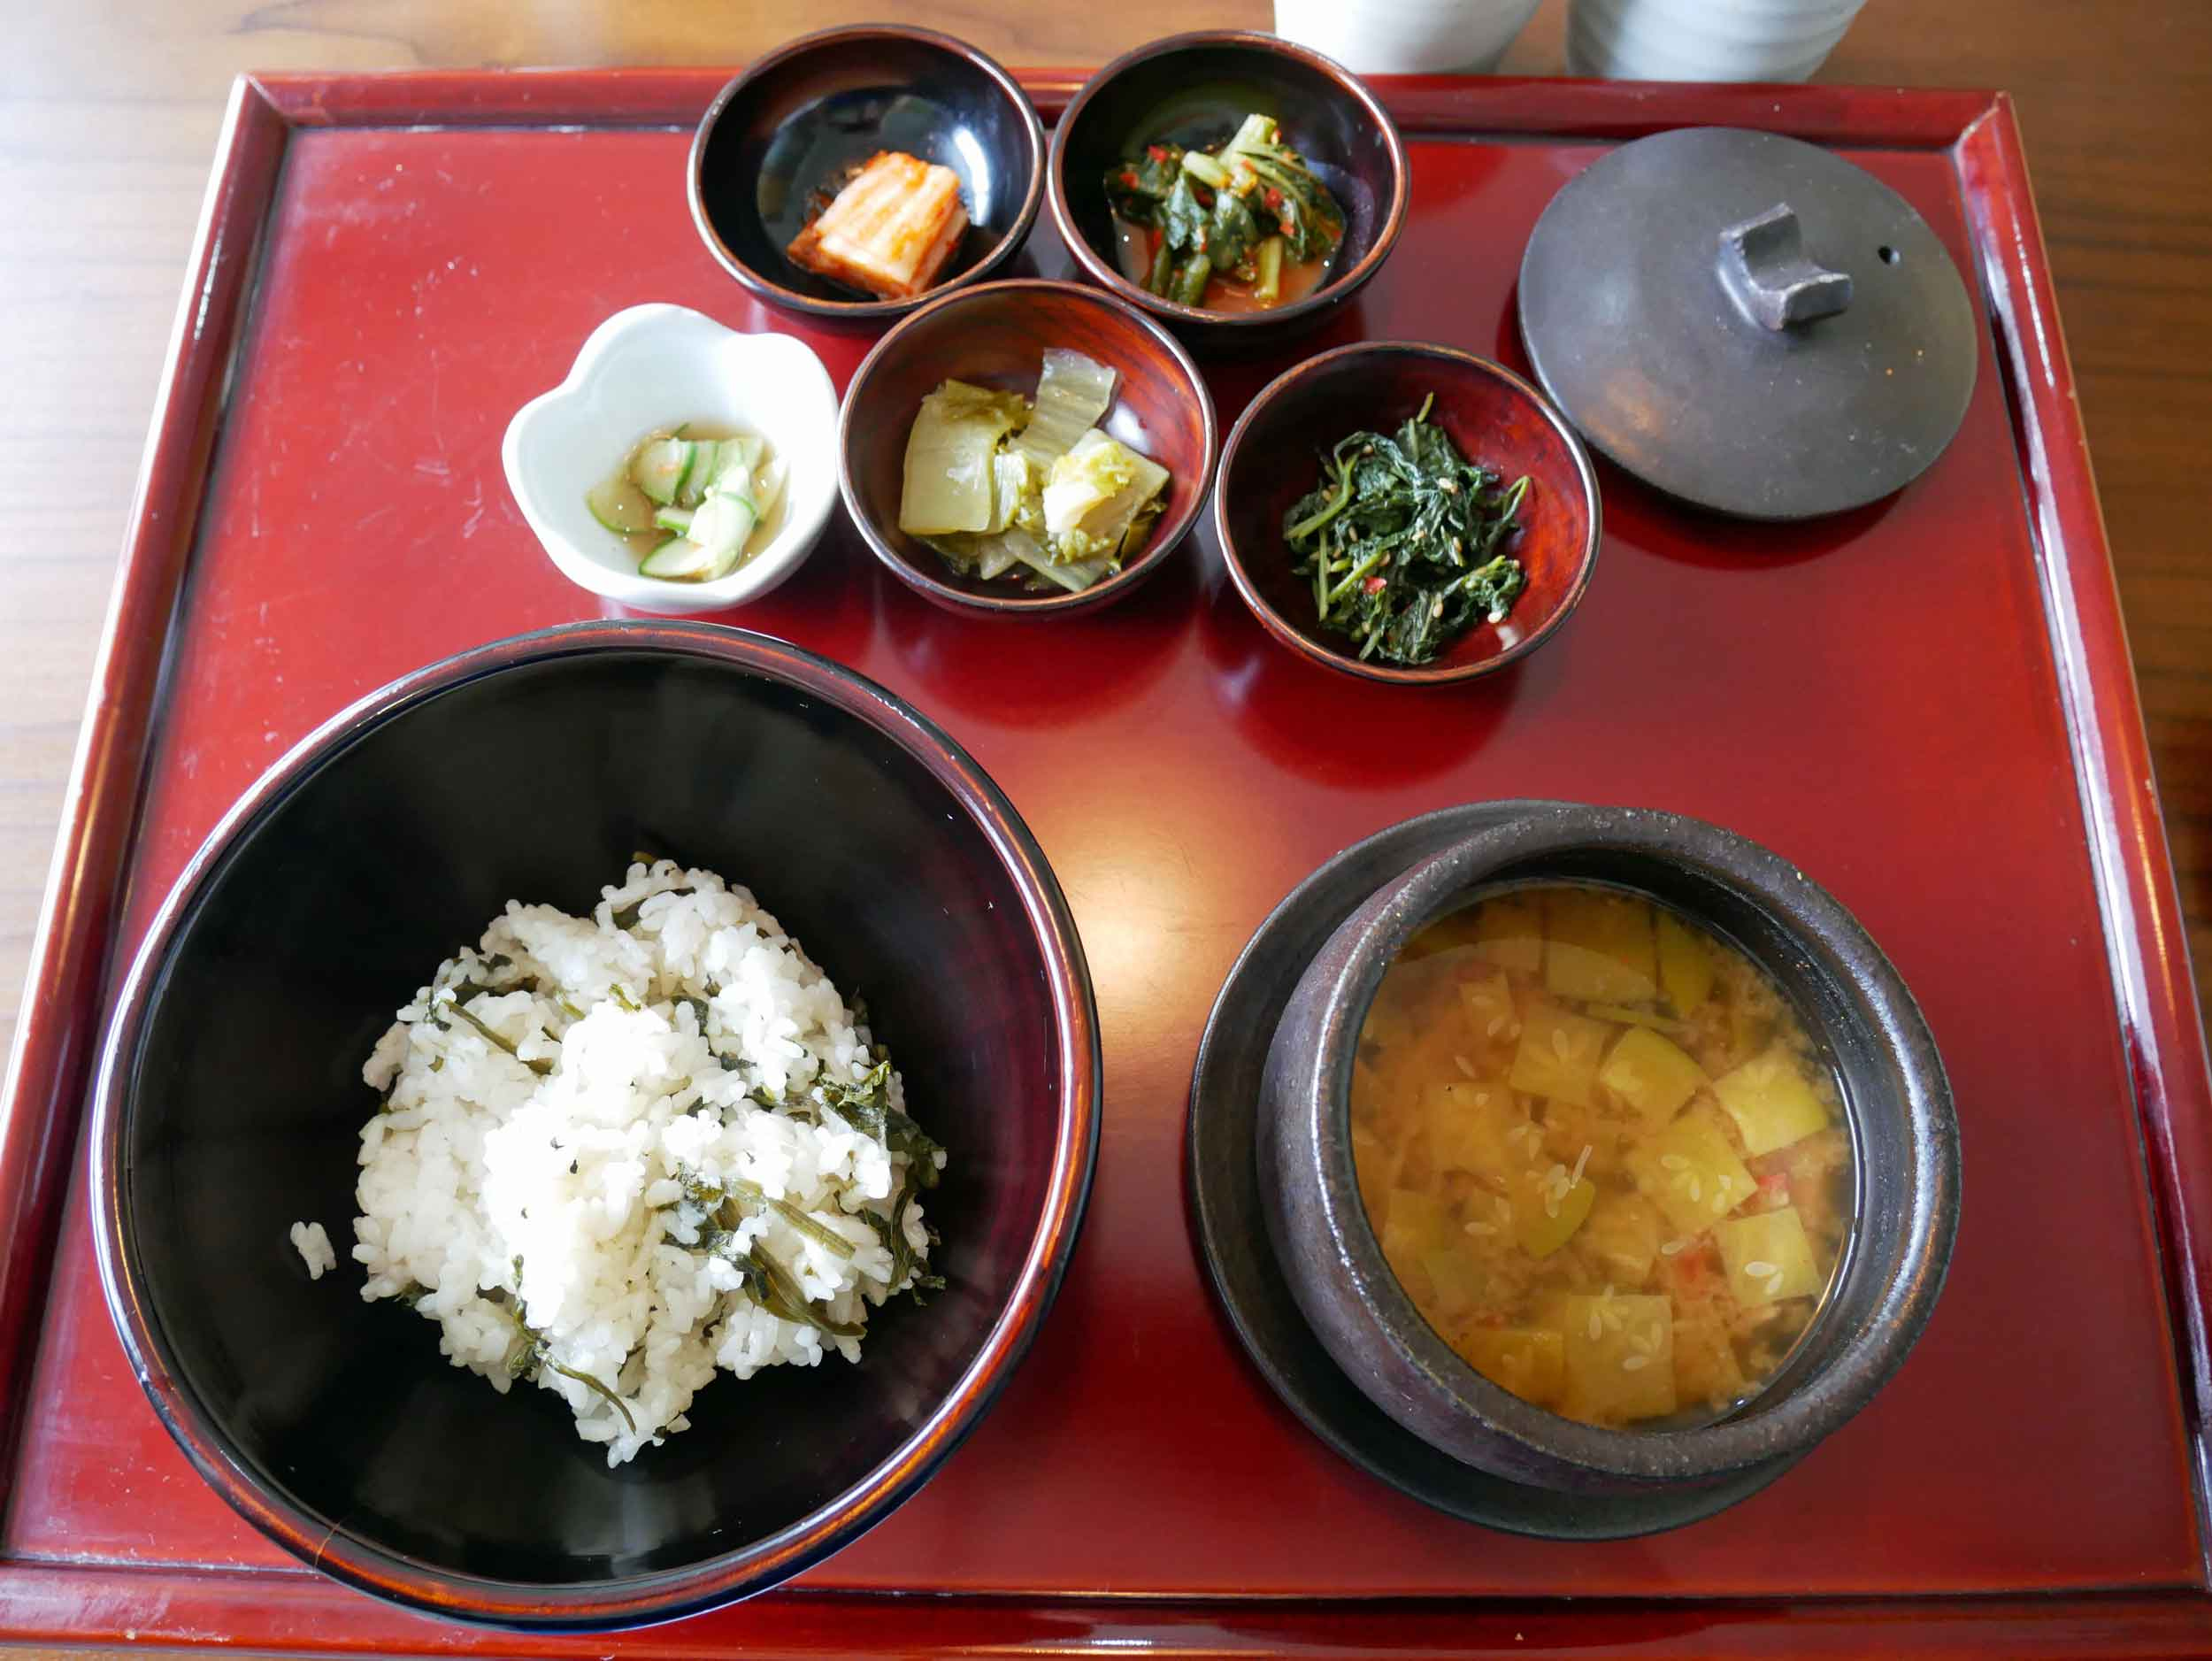 The main course, or  youmi , included seasoned thistle with rice, soy bean paste stew, two kinds of seasoned summer greens, and yangnyeomjang rice sauce.